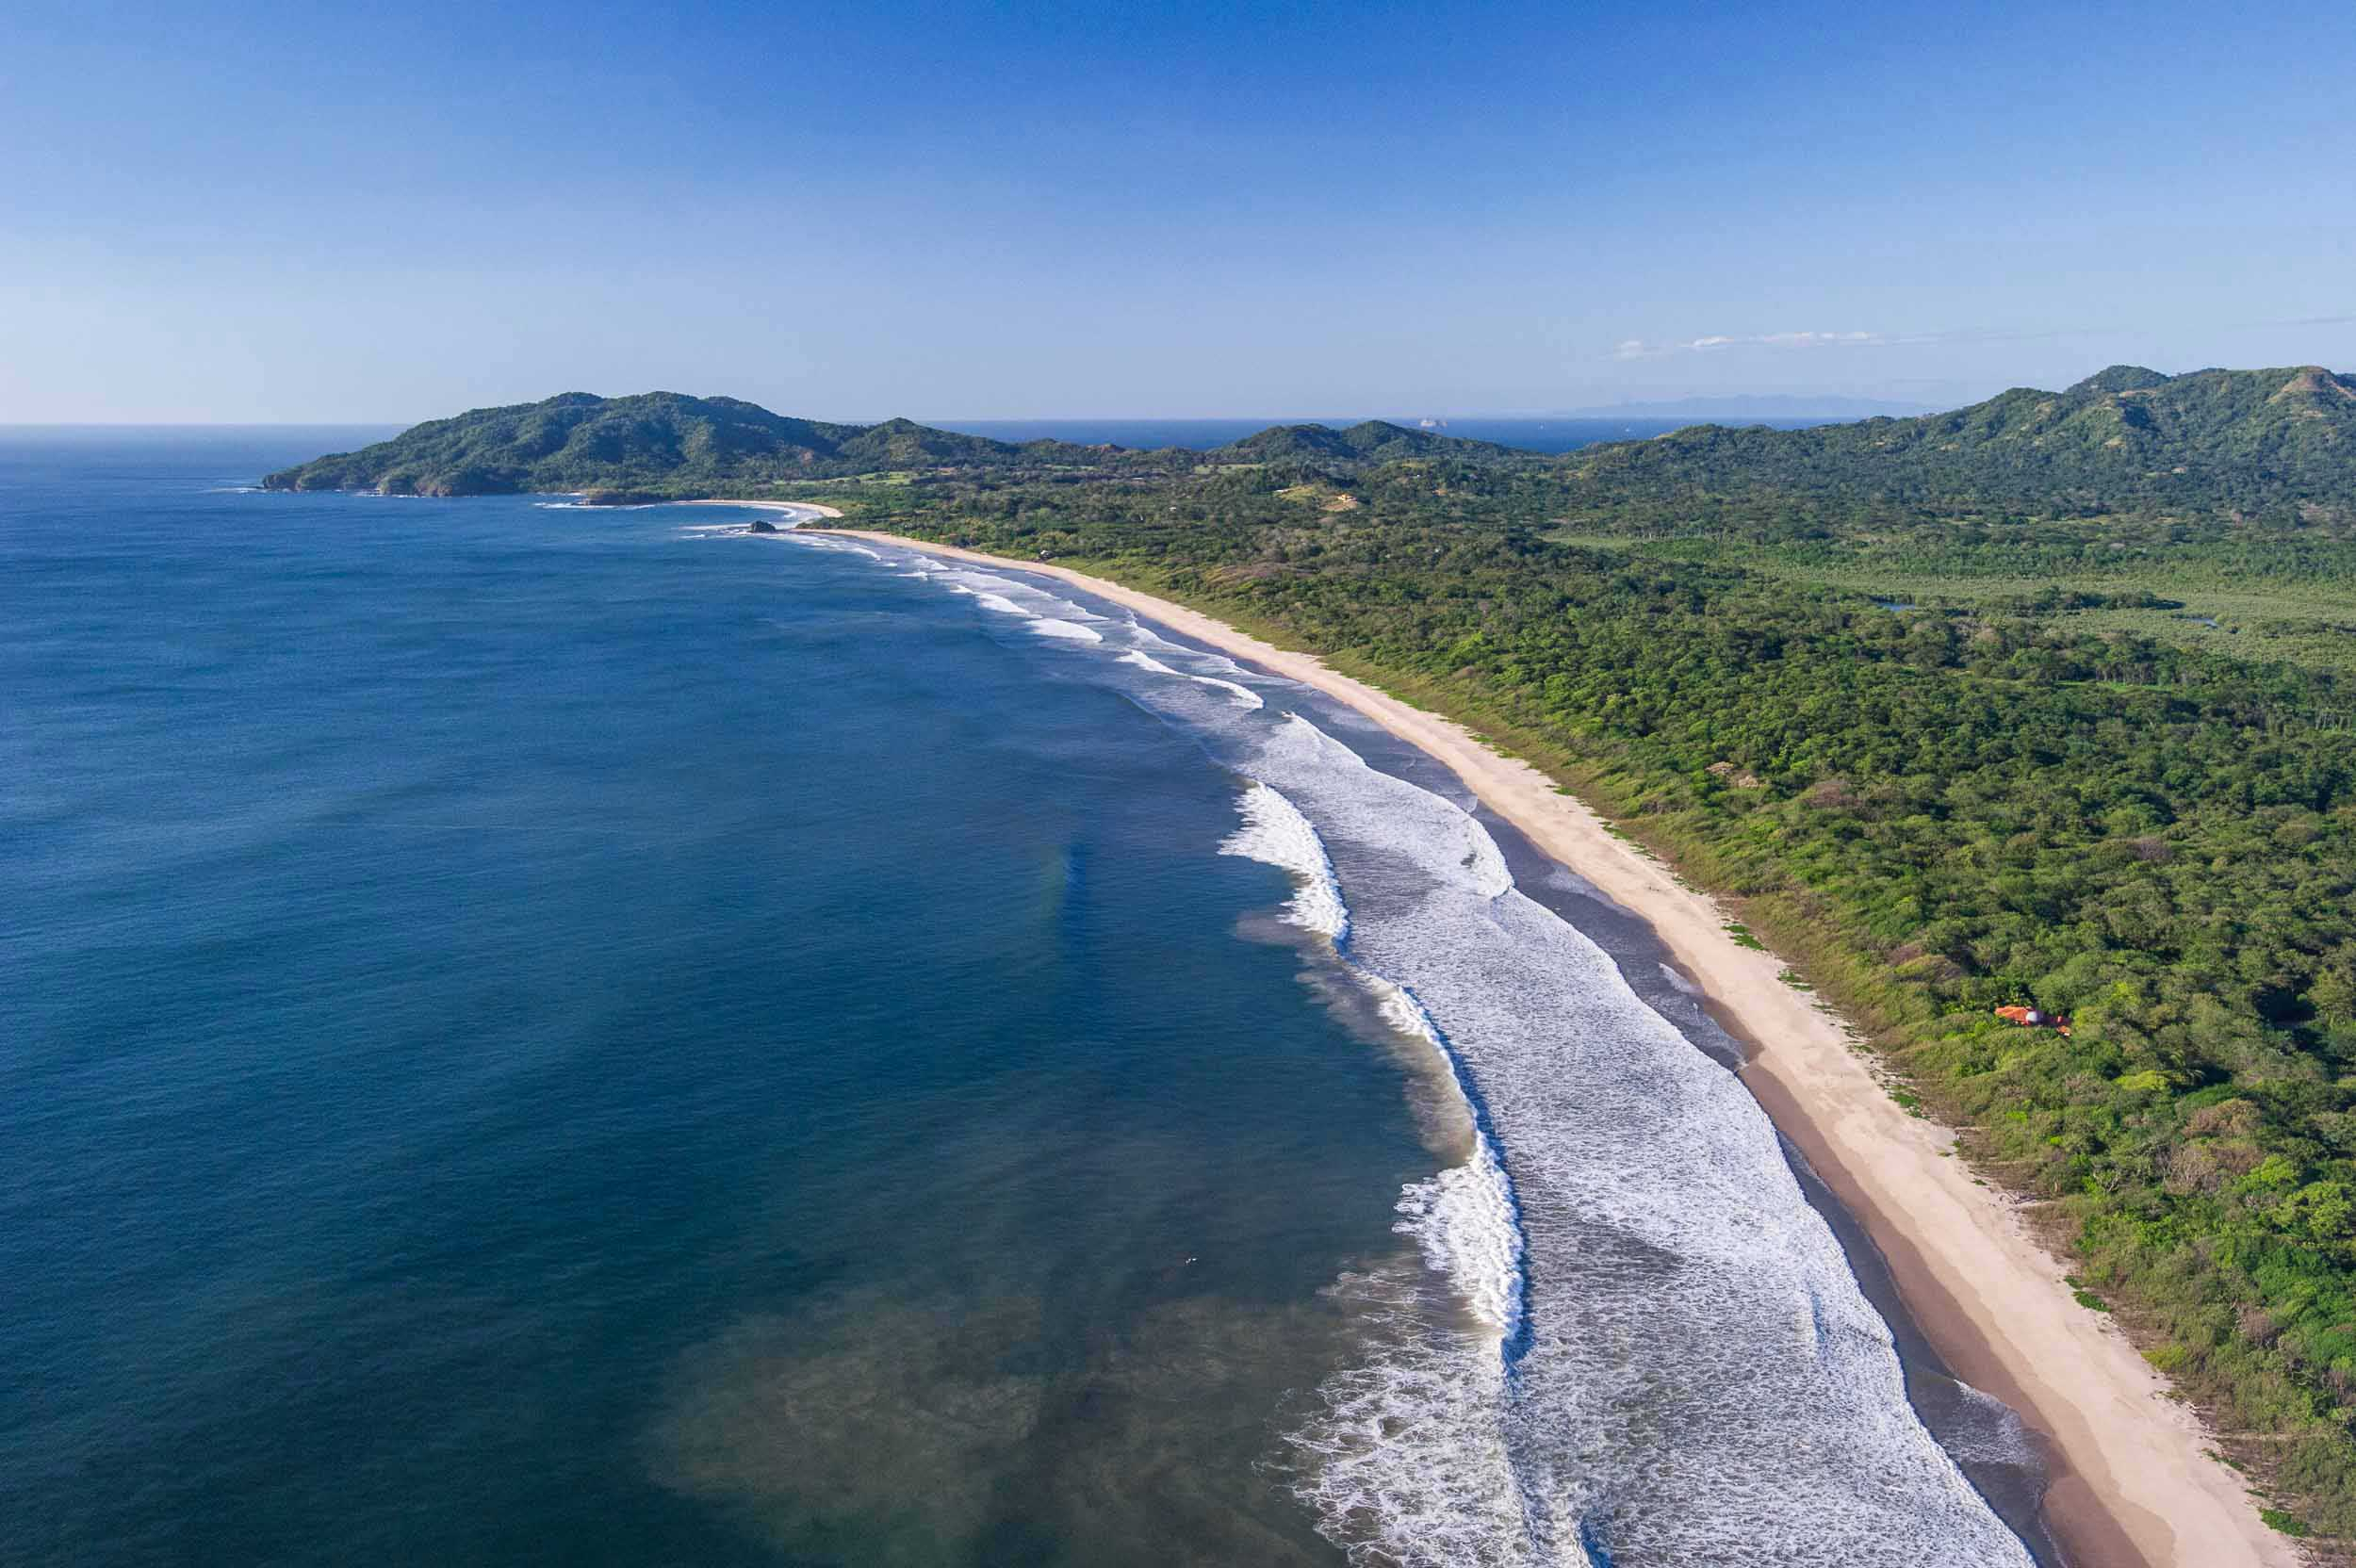 Aerial view of a long sweeping beach nestled between surf and forest, Playa Grande, Costa Rica